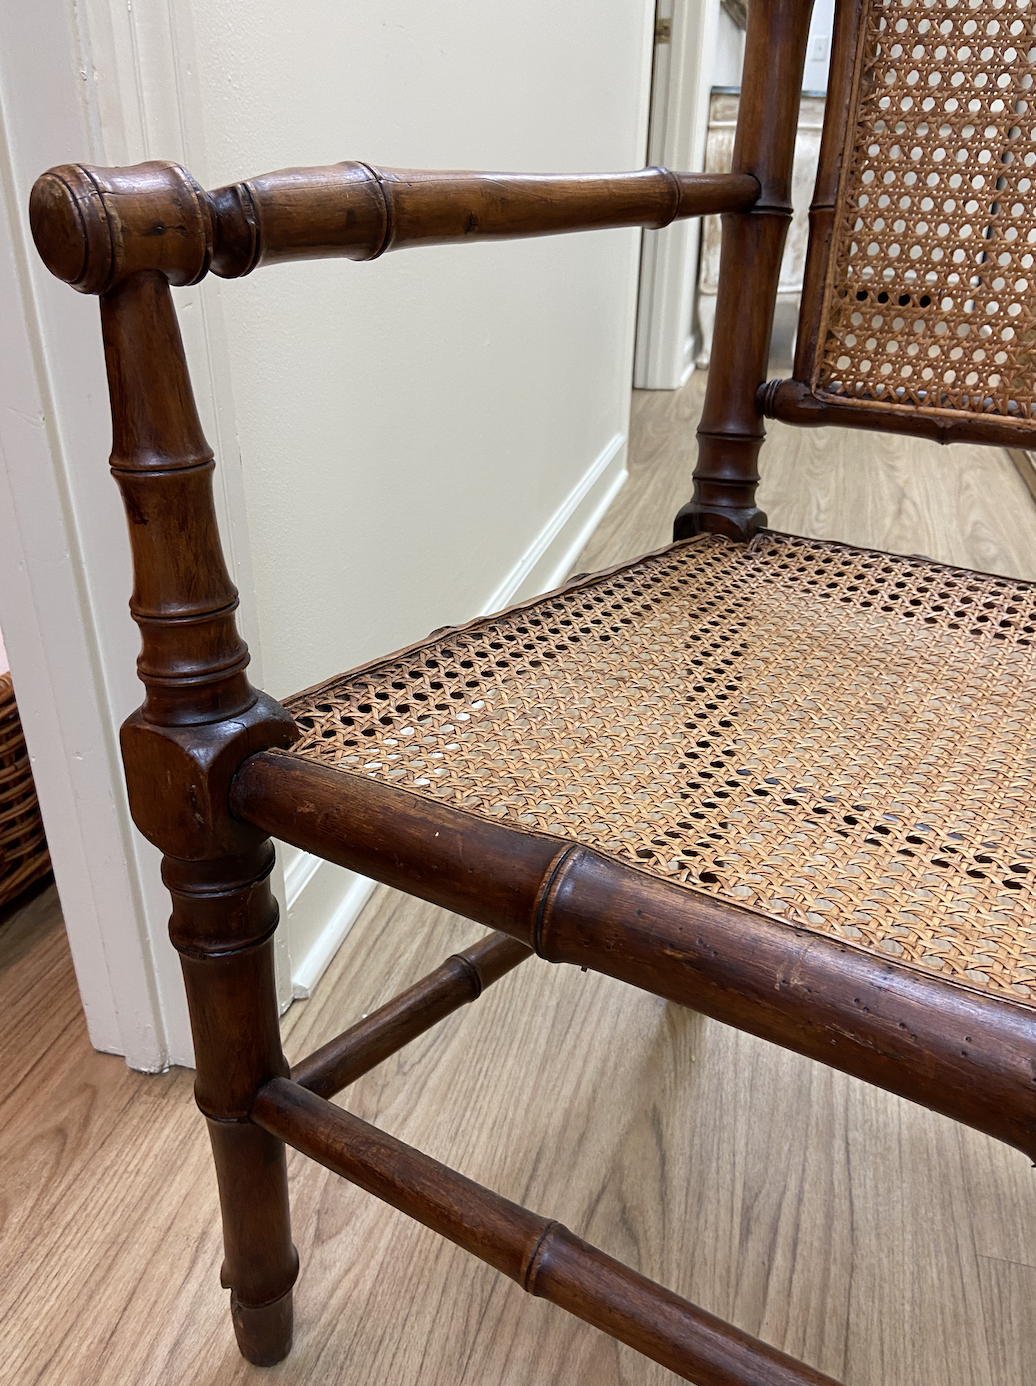 Image of Vintage French Bamboo Design Chair With Cane Back and Seat